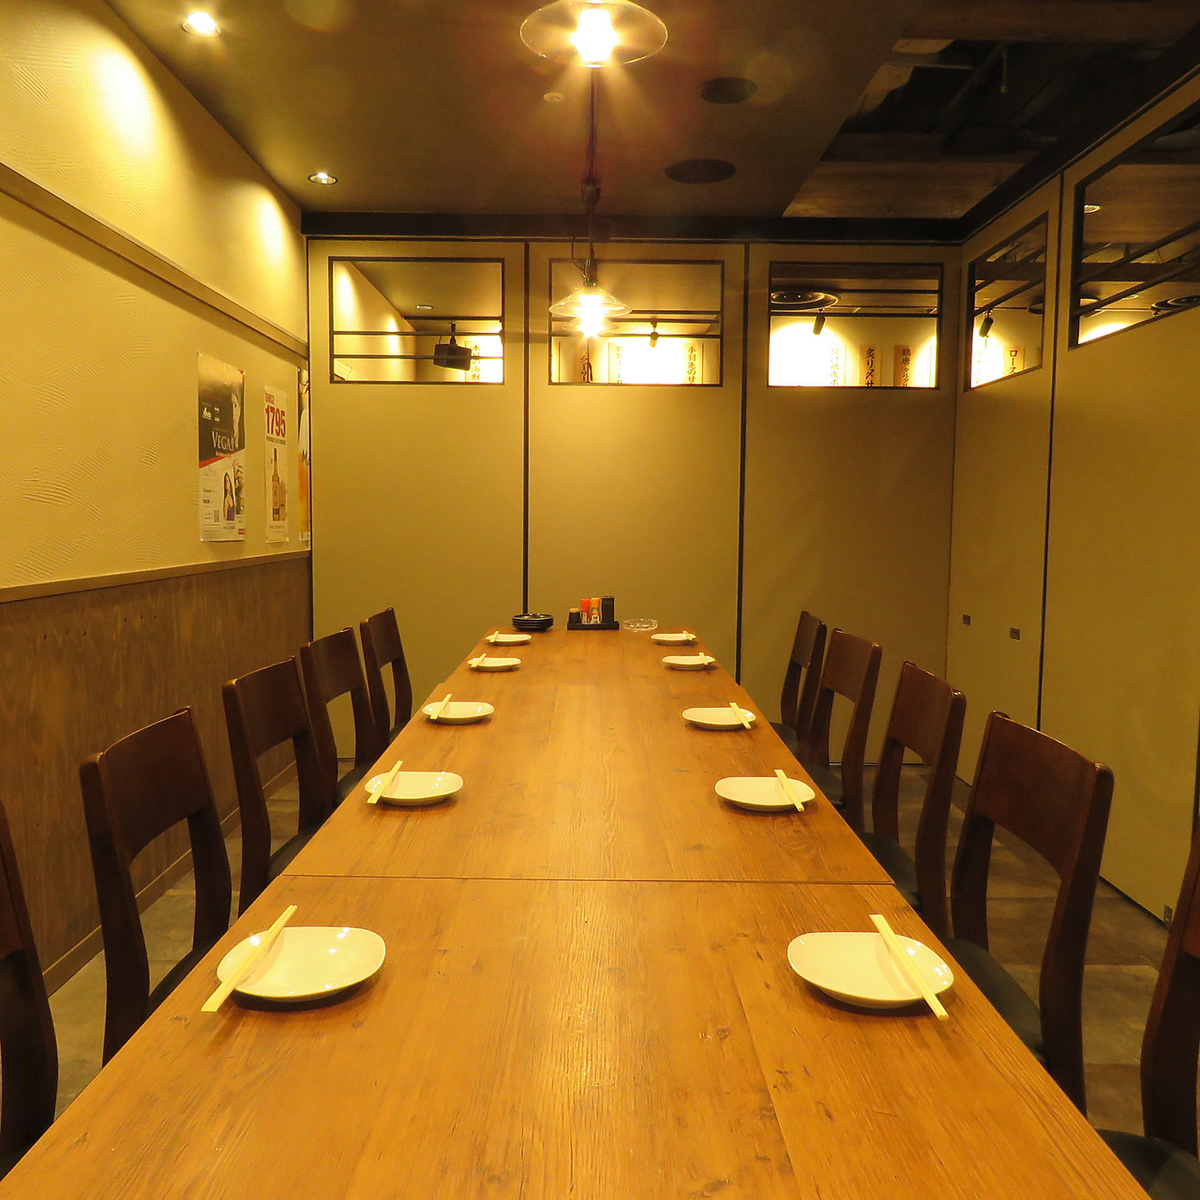 Up to 15 guests OK room private ♪ Please participate in banquets such as alumni association ☆ [Okayama / Okayama City / Private room / Nippo / 280 yen / Sashimi / Gyoza / Banquet /]